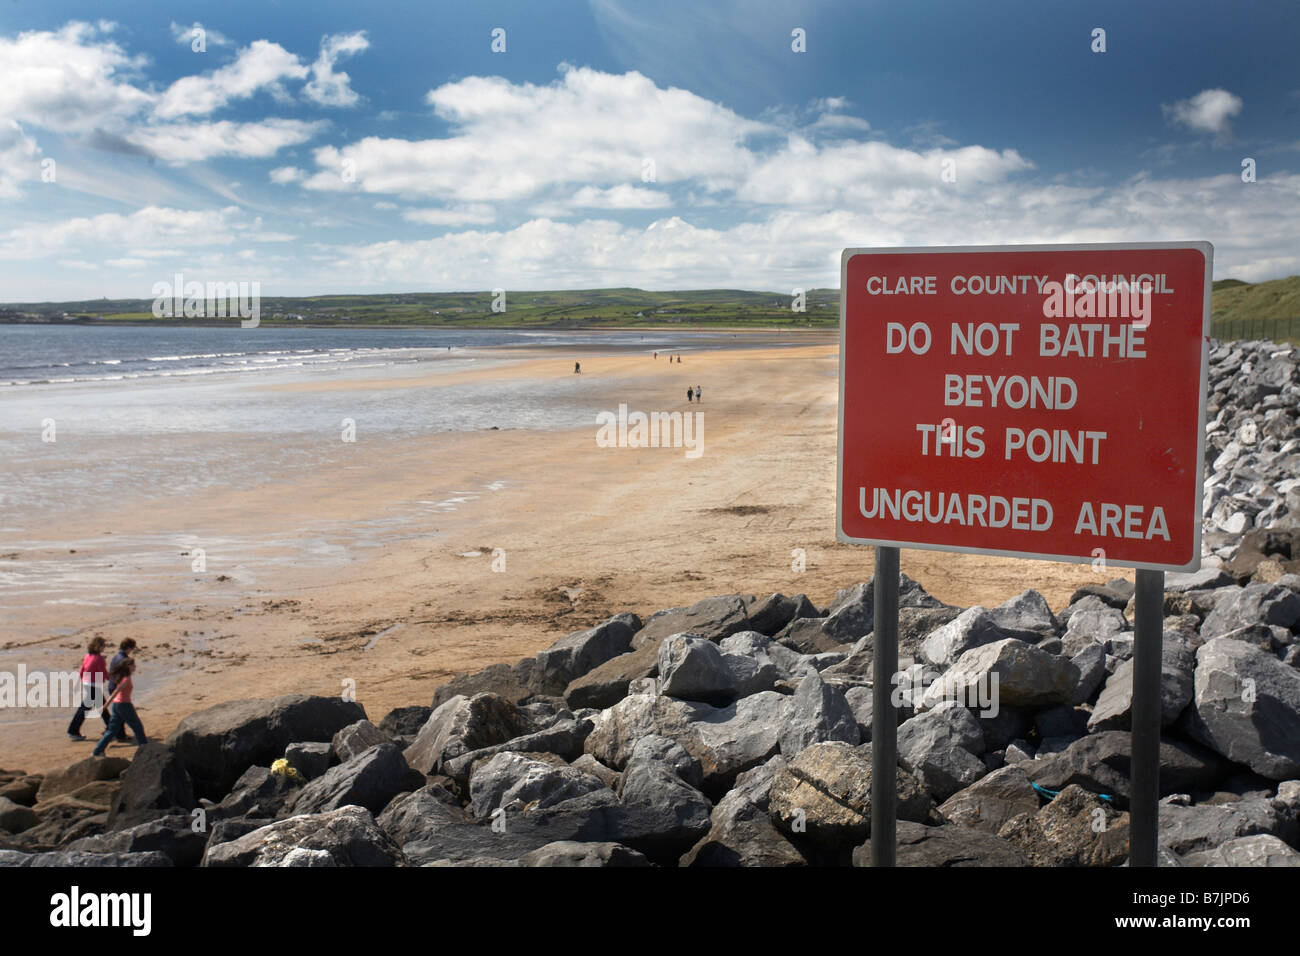 Warning sign on wall of rocks overlooking the beach. Low tide exposes wet sand and puddles of water from outgoing - Stock Image